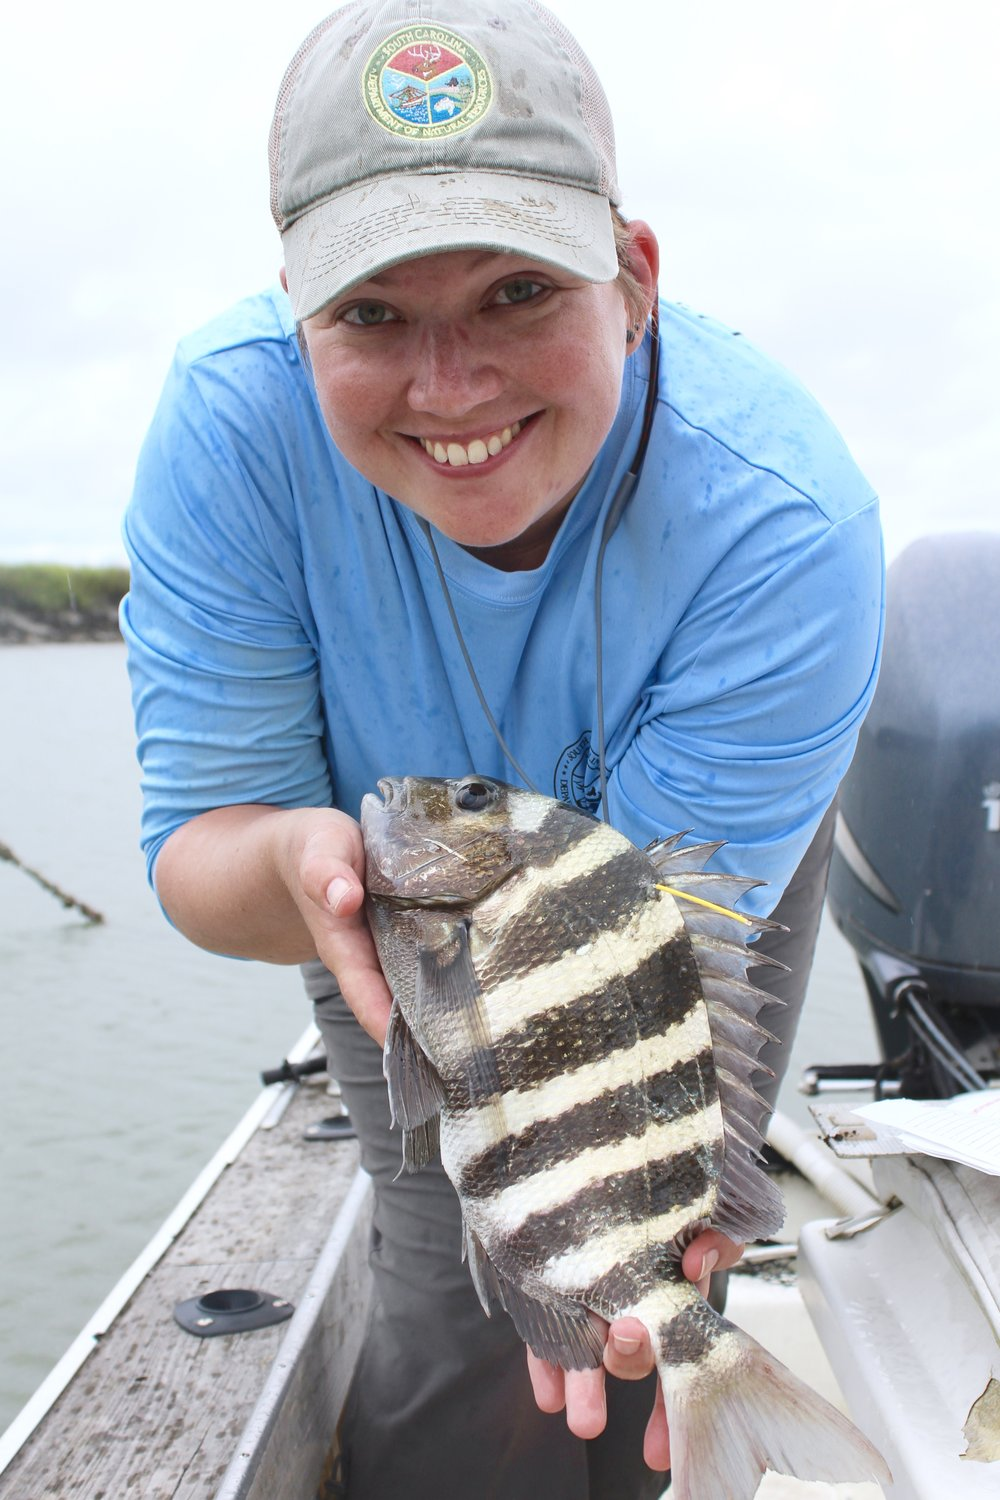 SCDNR's Morgan Hart shows off a sheepshead she caught and tagged near Capers Island. (Photo: E. Weeks/SCDNR)